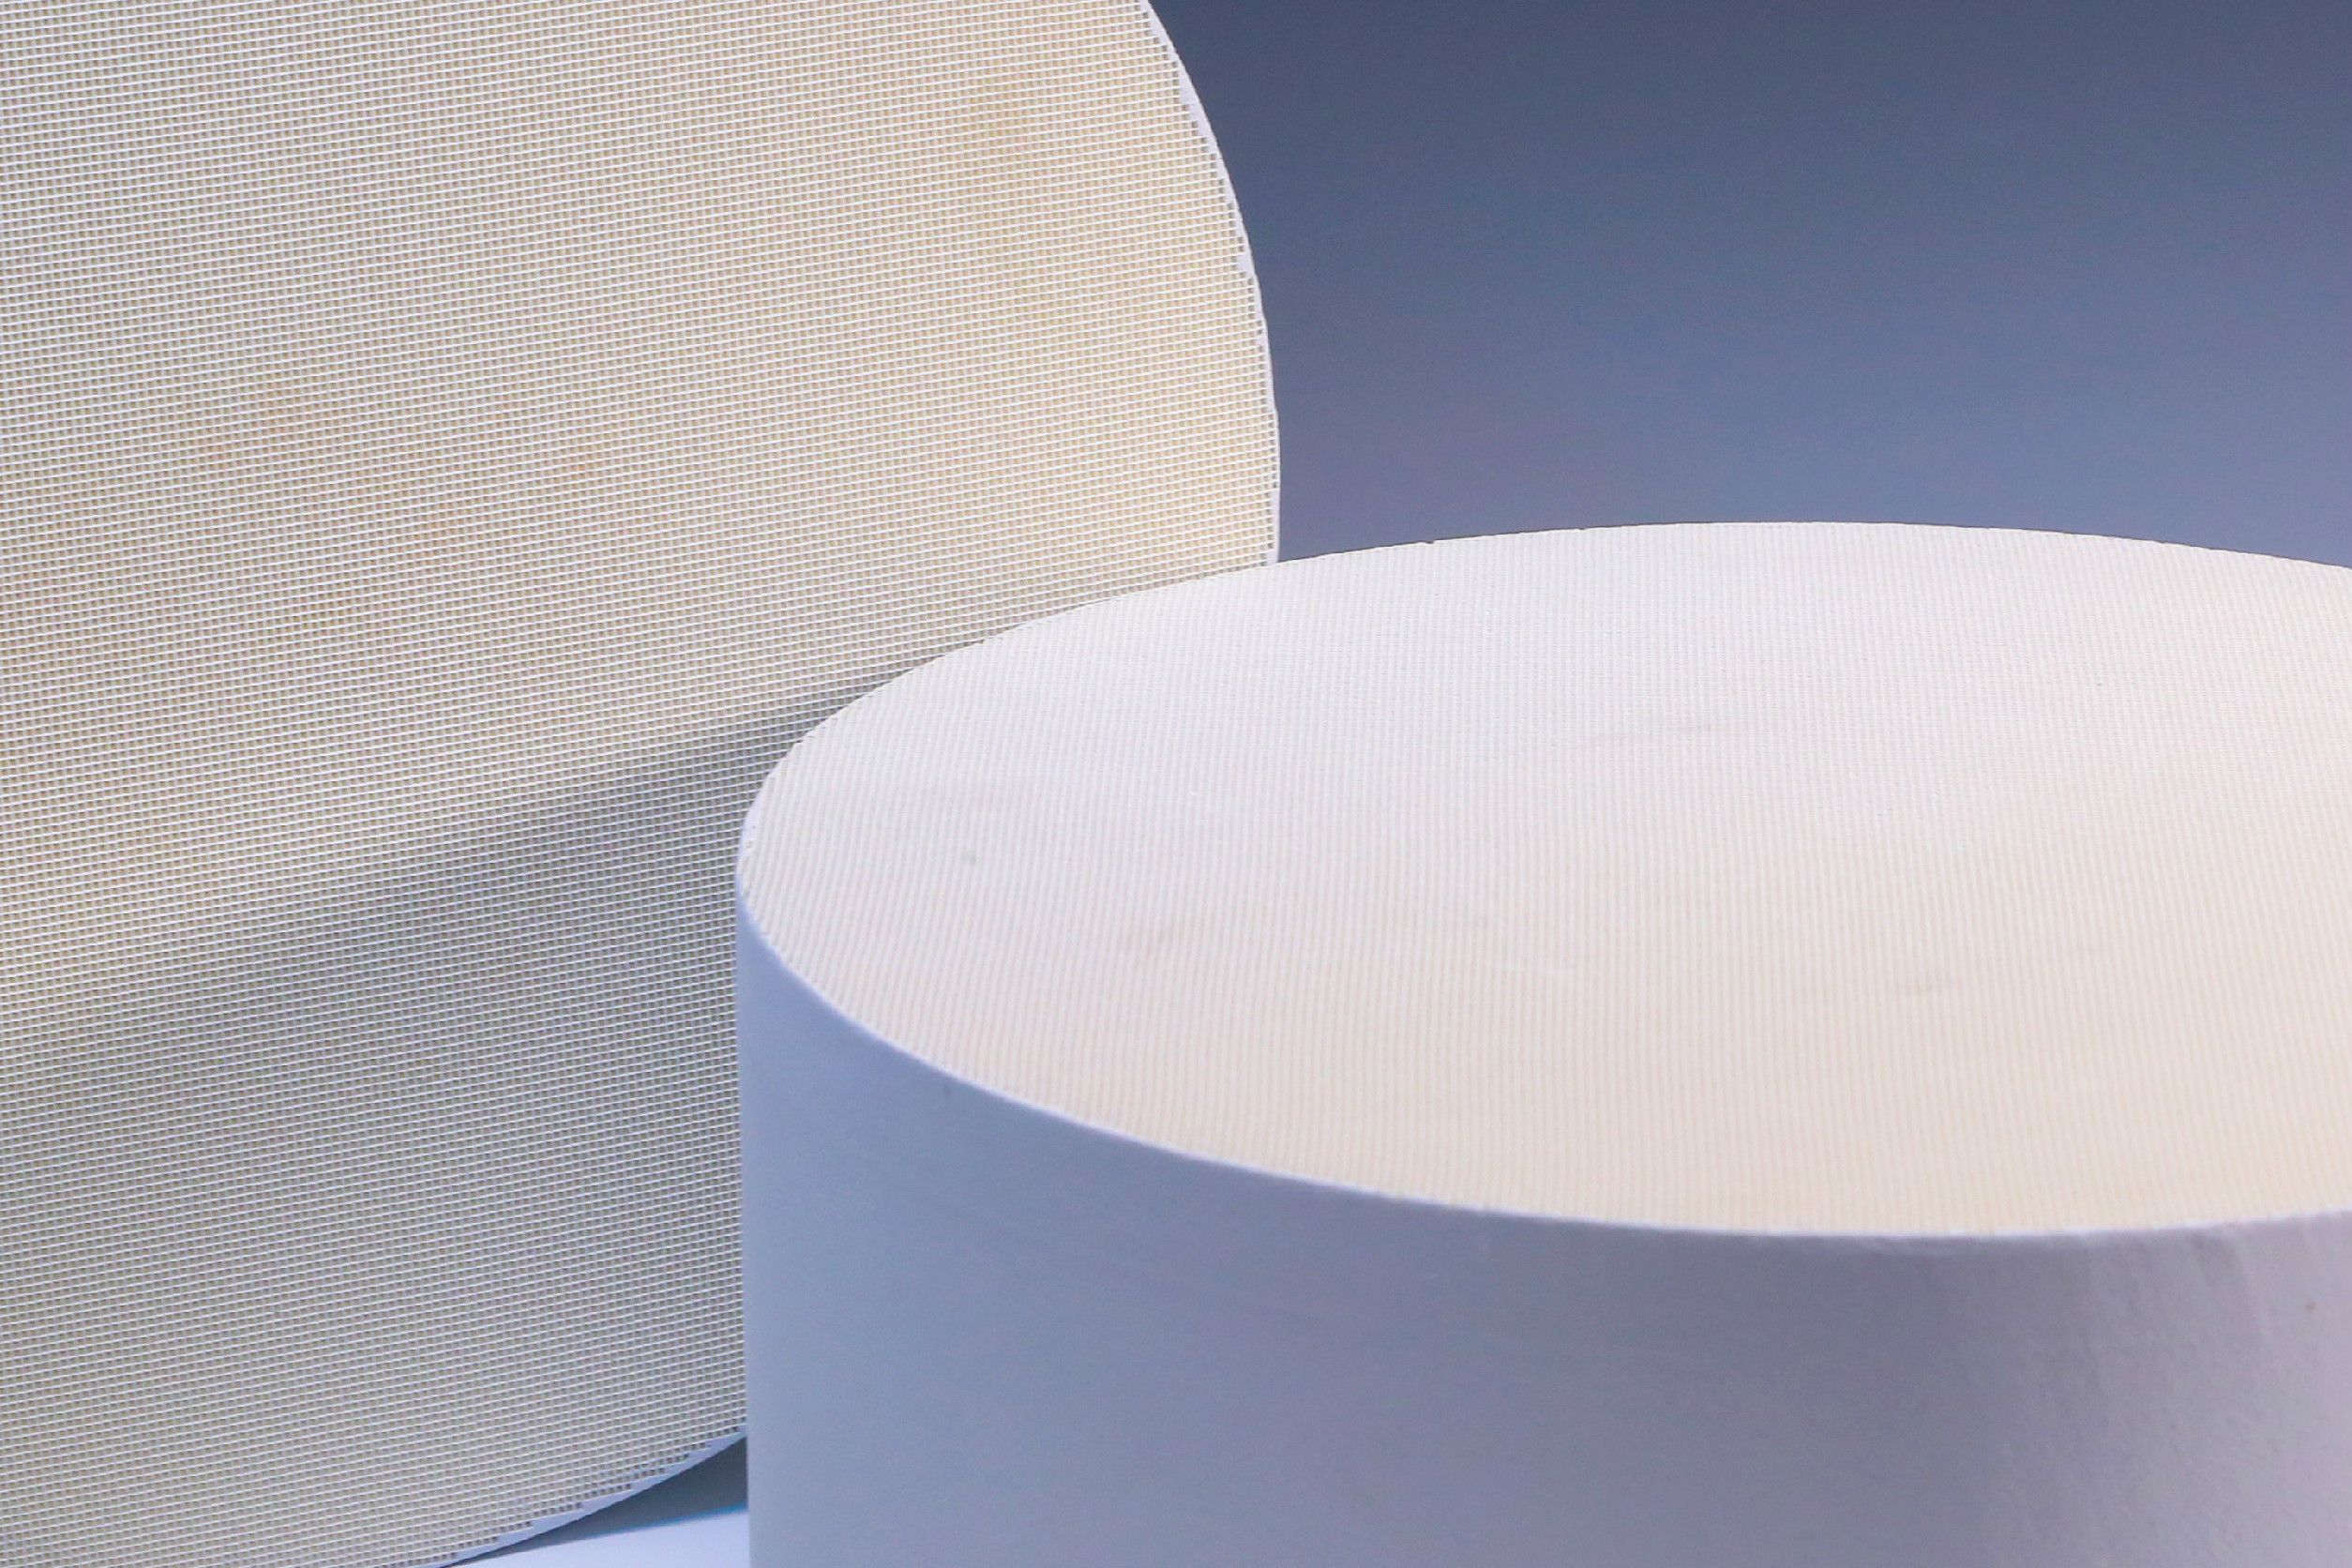 Industrial SCR Honeycomb Ceramic Filter Round And White